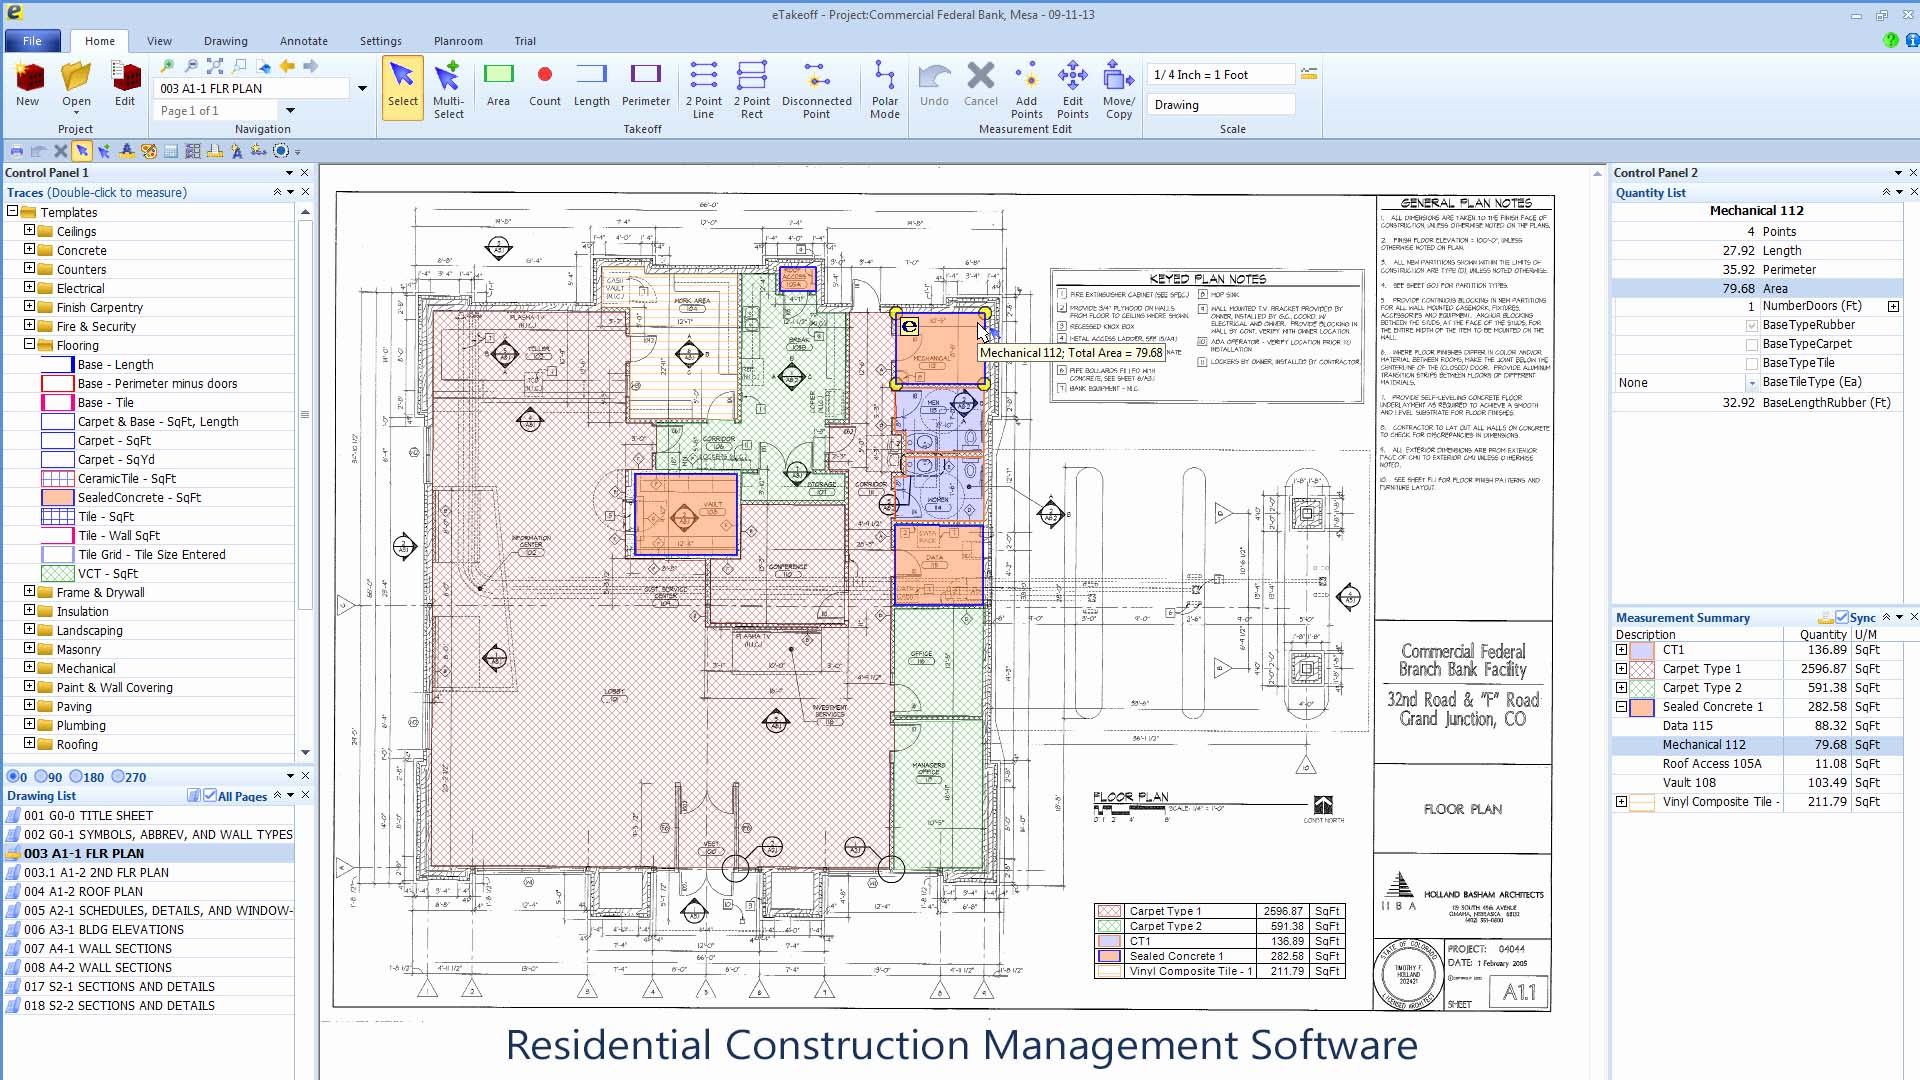 Construction Management Spreadsheet In Residential Construction Management Software  Construction Forum